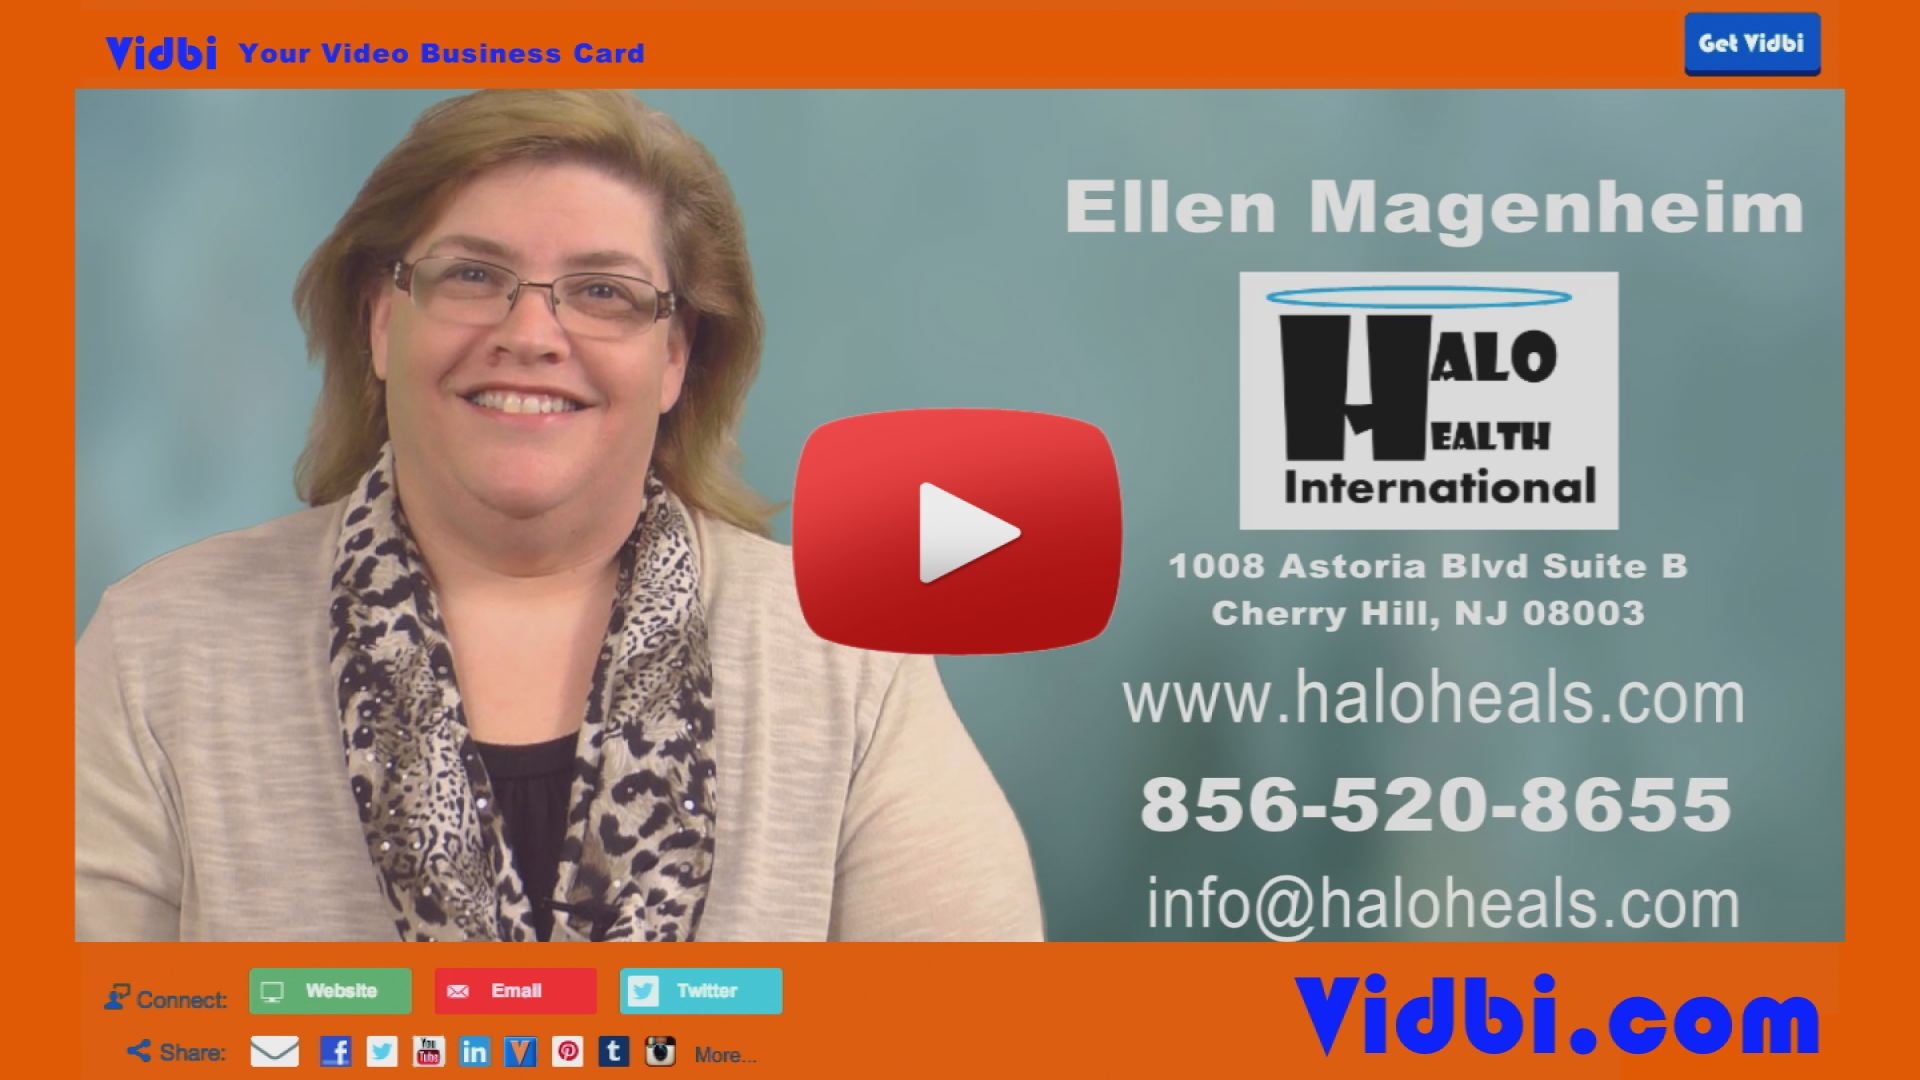 Ellen Magenheim - Halo Health International Vidbi